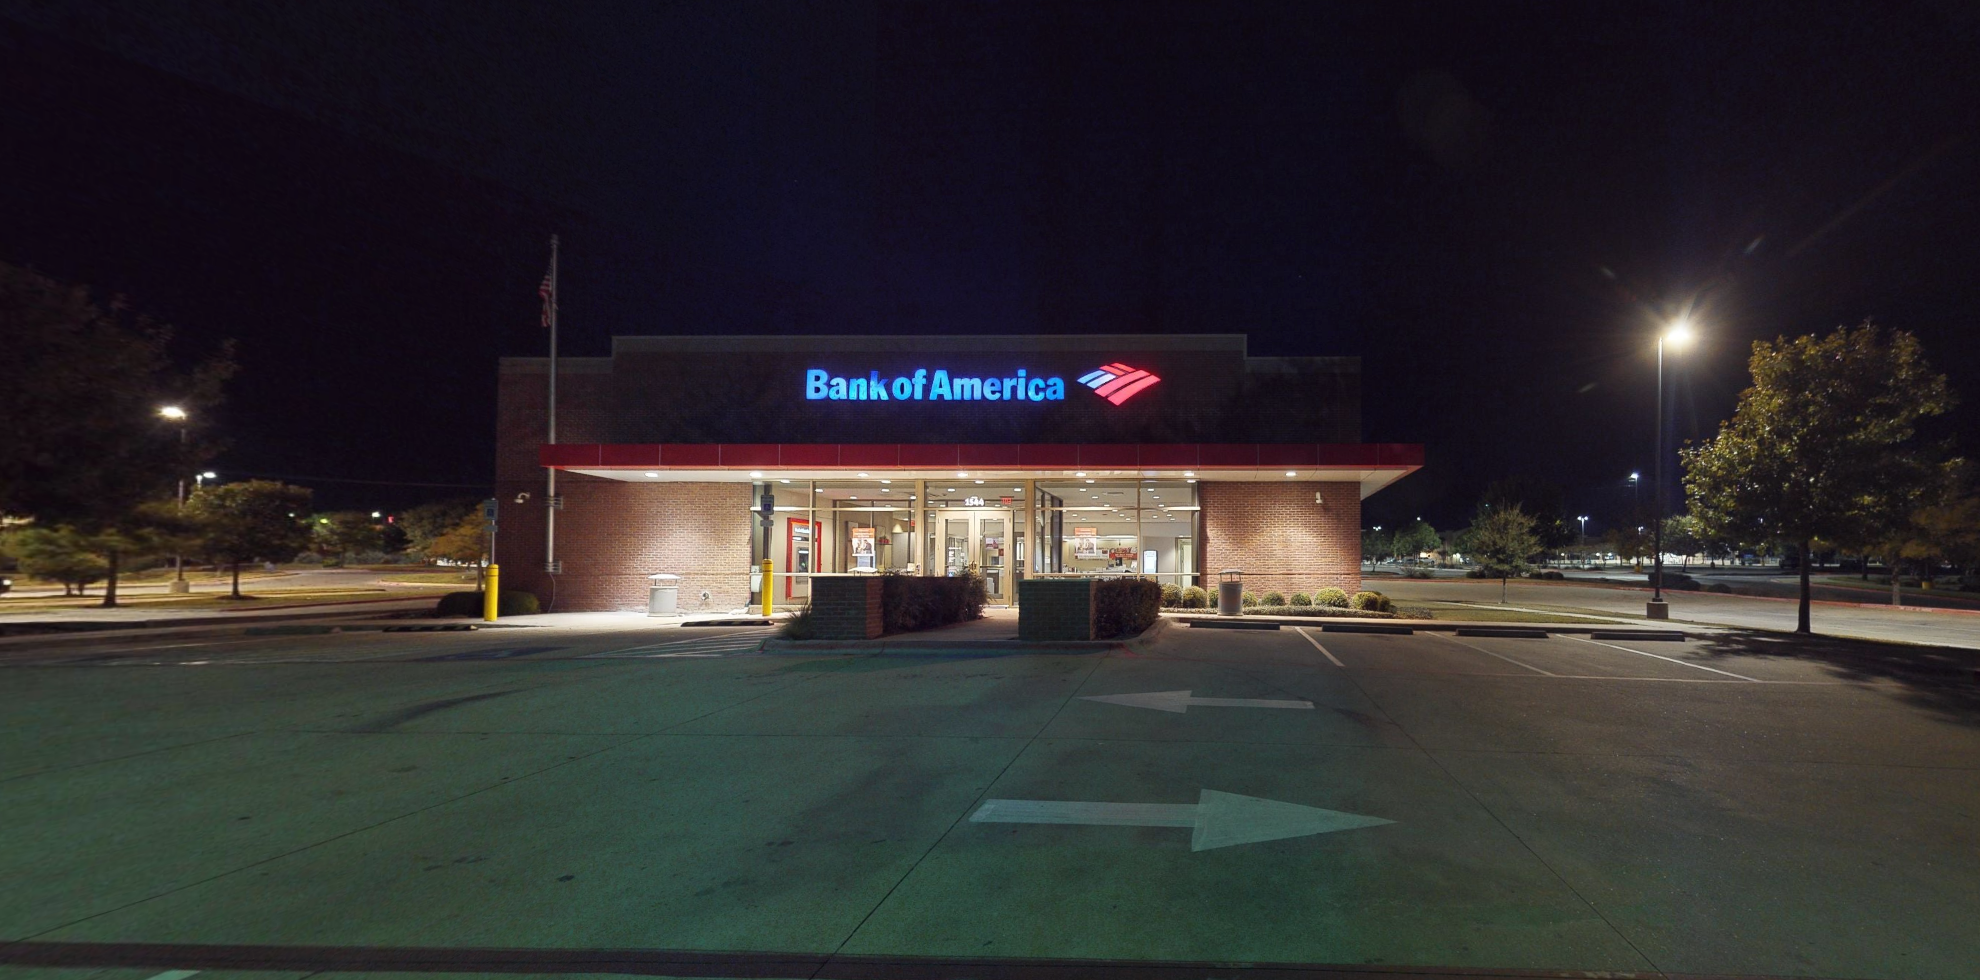 Bank of America financial center with drive-thru ATM and teller   1544 FM 685, Pflugerville, TX 78660